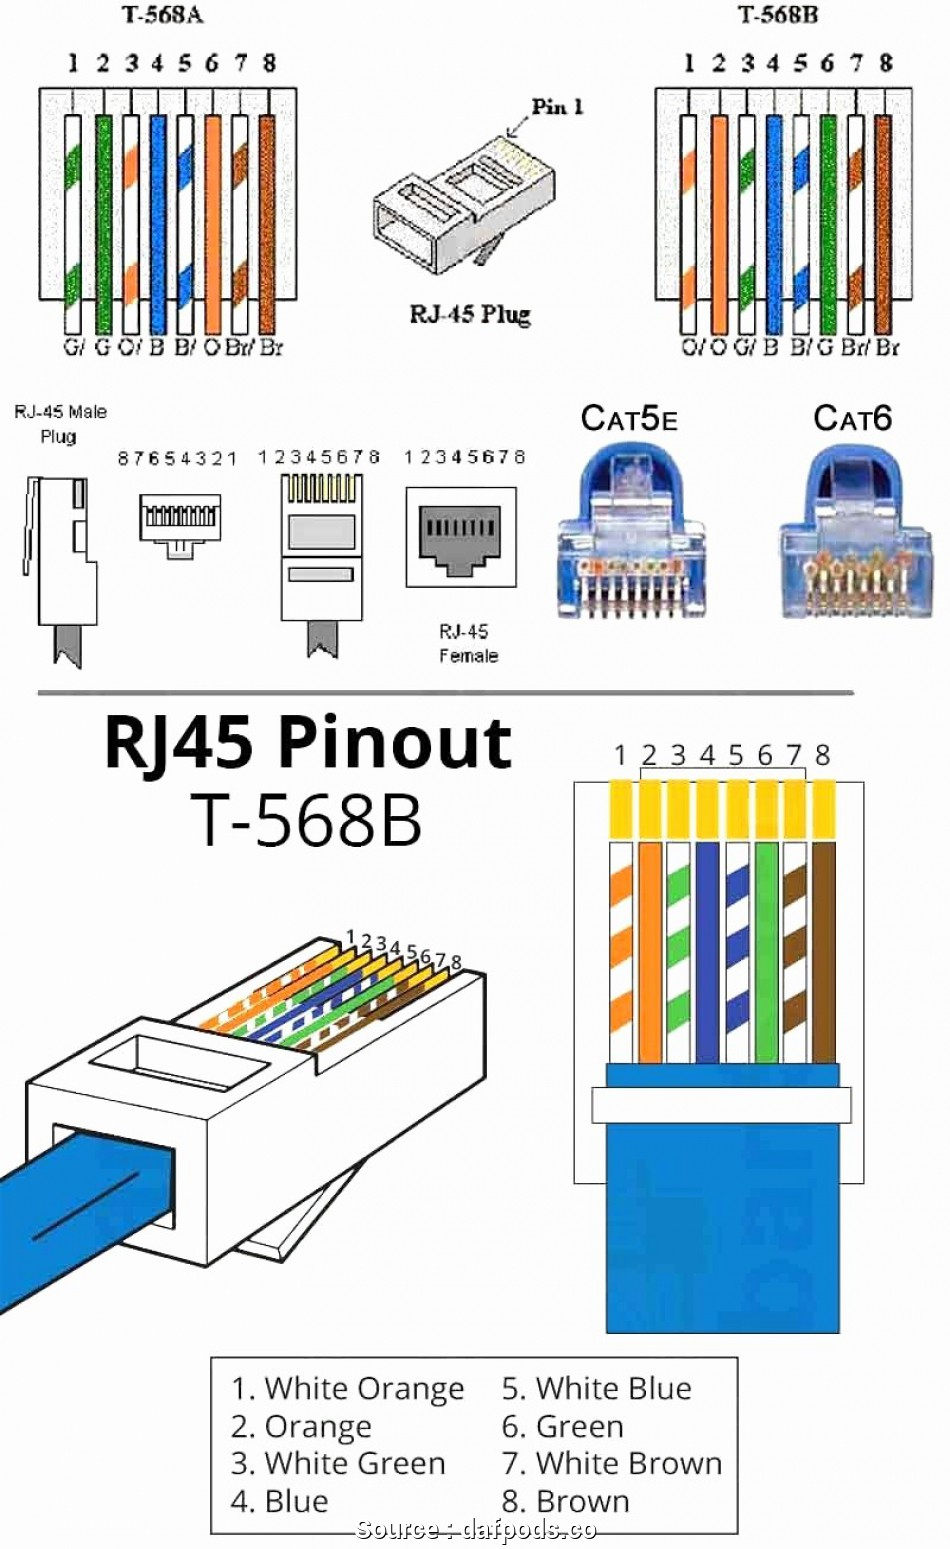 Cat 6 Schematic | Wiring Diagram - Cat6 Wiring Diagram